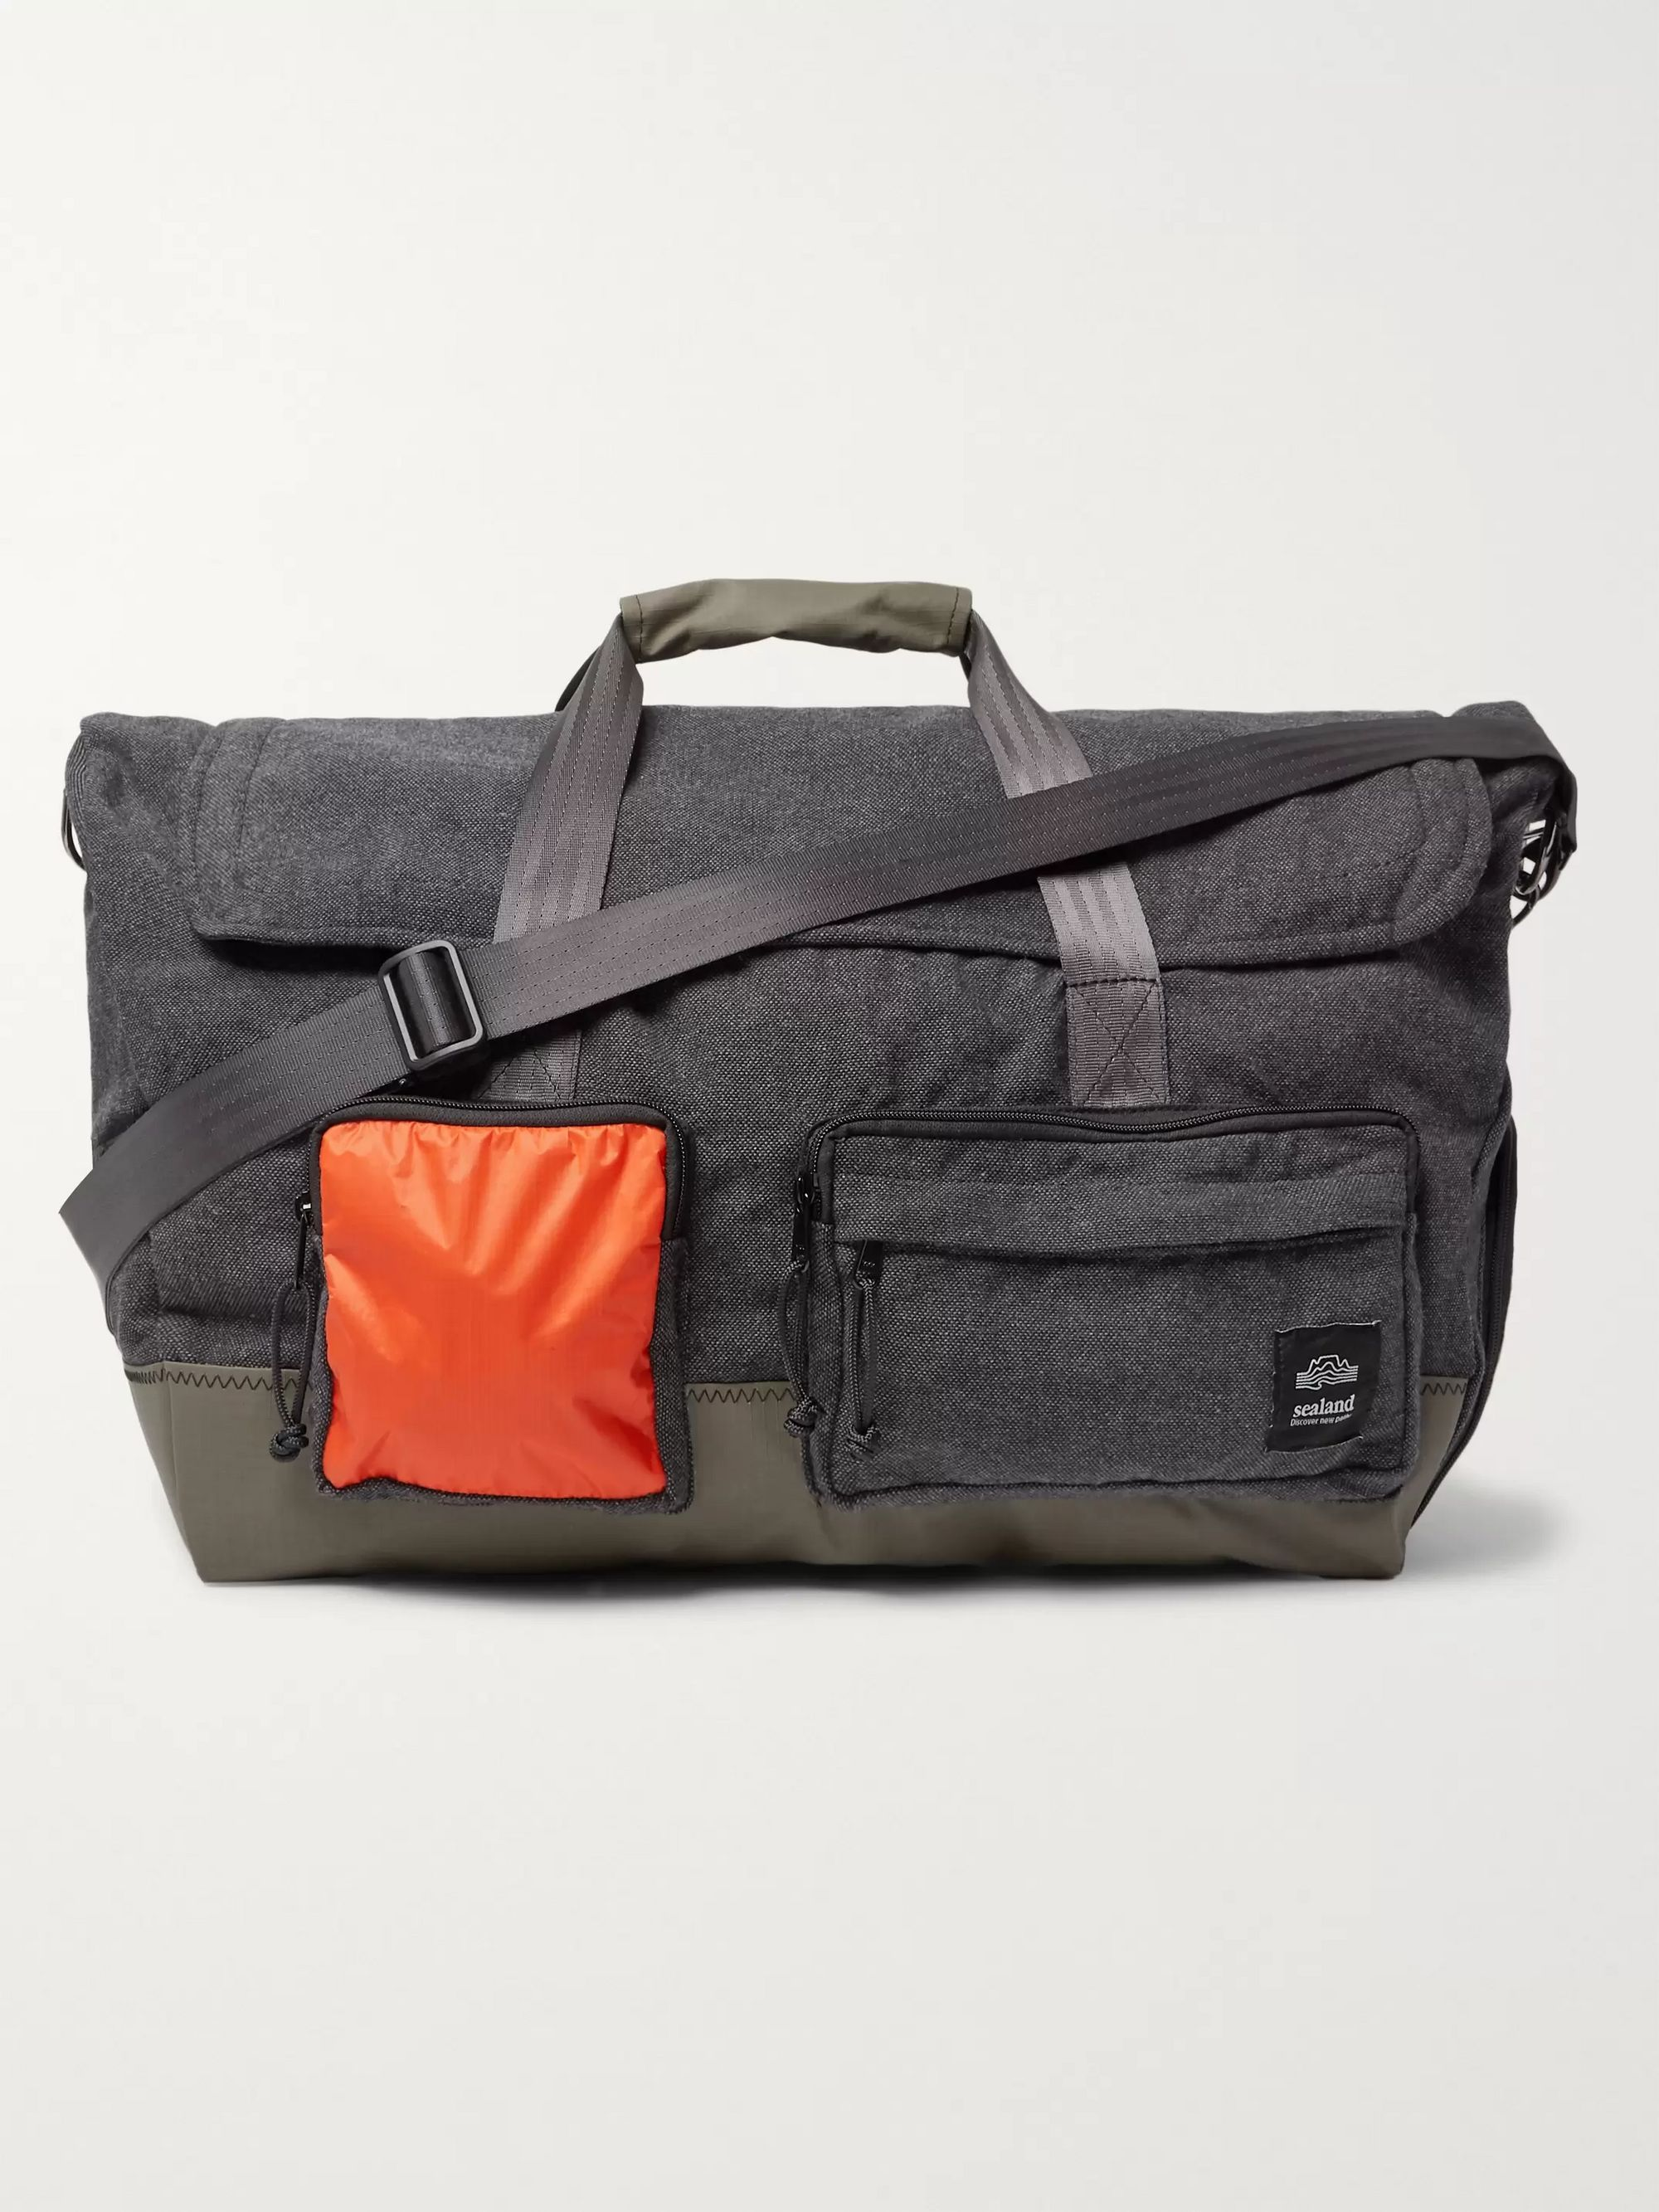 Sealand Gear Cotton-Canvas, Ripstop and Spinnaker Duffle Bag